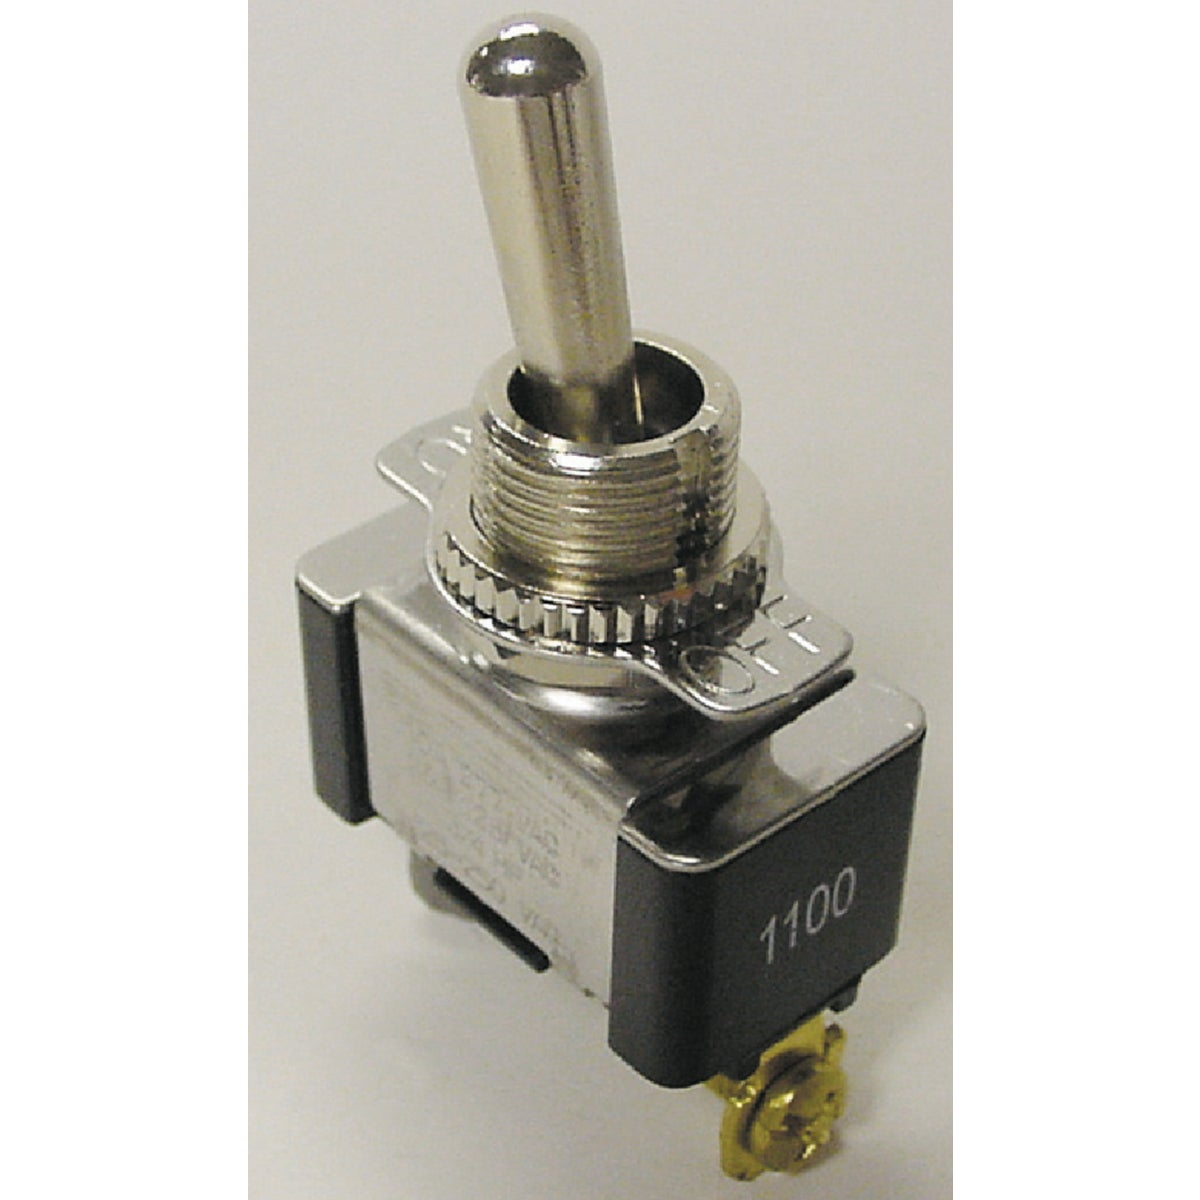 HEAVY DUTY TOGGLE SWITCH - GSW-110 by G B Electrical Inc